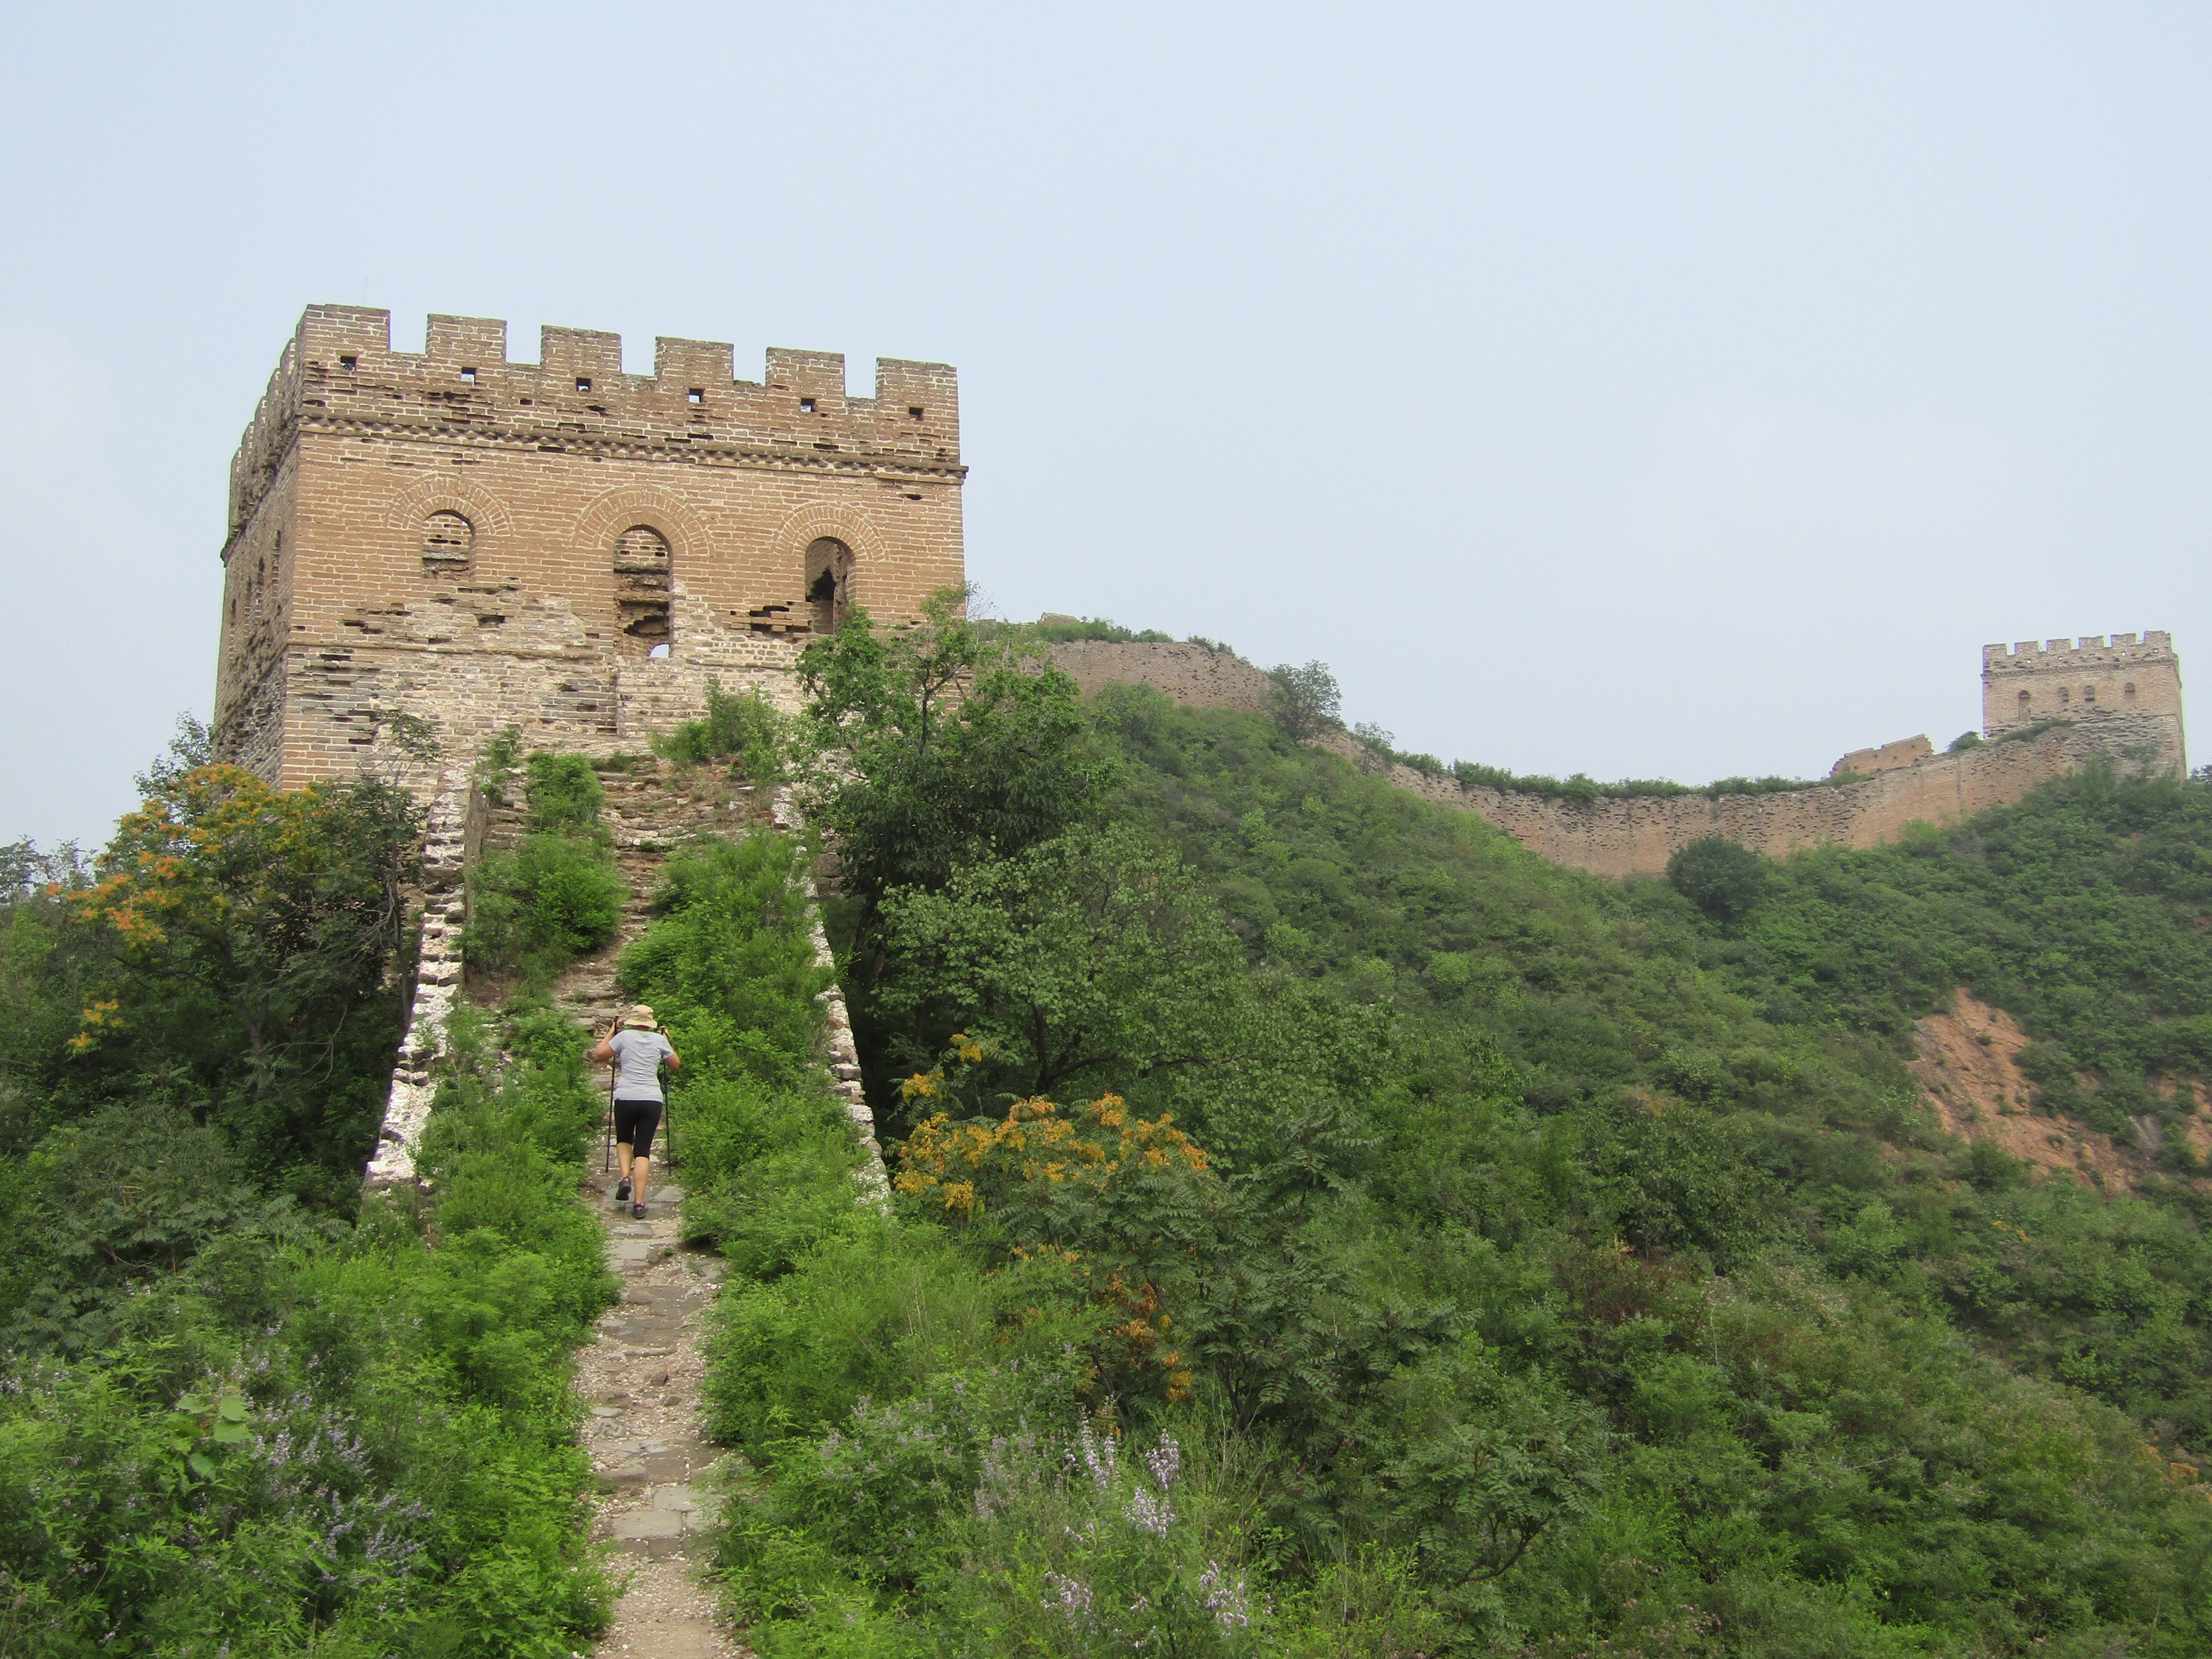 Hiking up some of the steep steps between the different guard towers. It's easy to imagine soldiers protecting China from invaders with the intact fireplaces and lookouts.